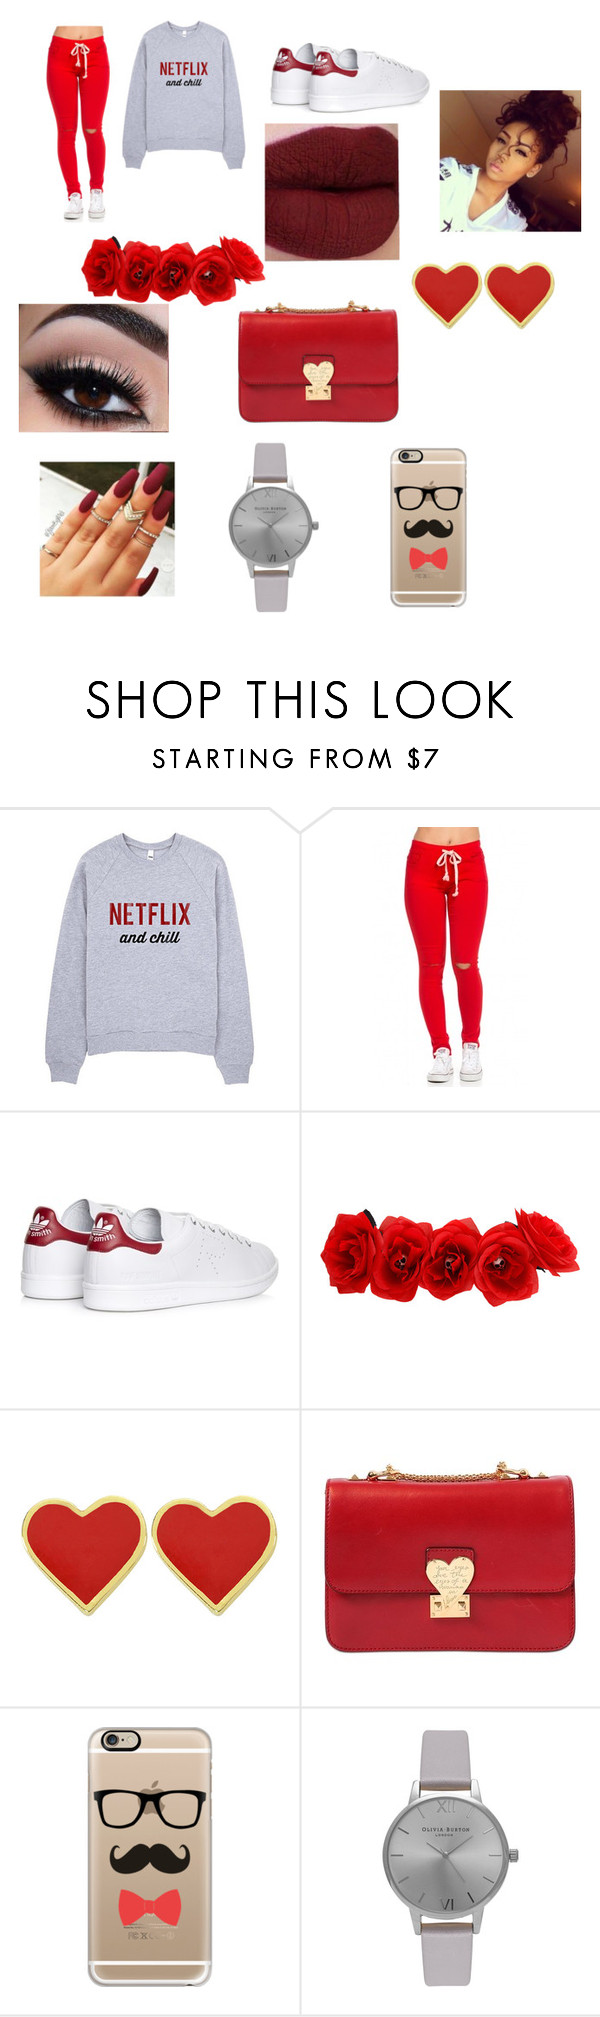 """Netflix"" by goofystar ❤ liked on Polyvore featuring adidas, Valentino, Casetify and Olivia Burton"